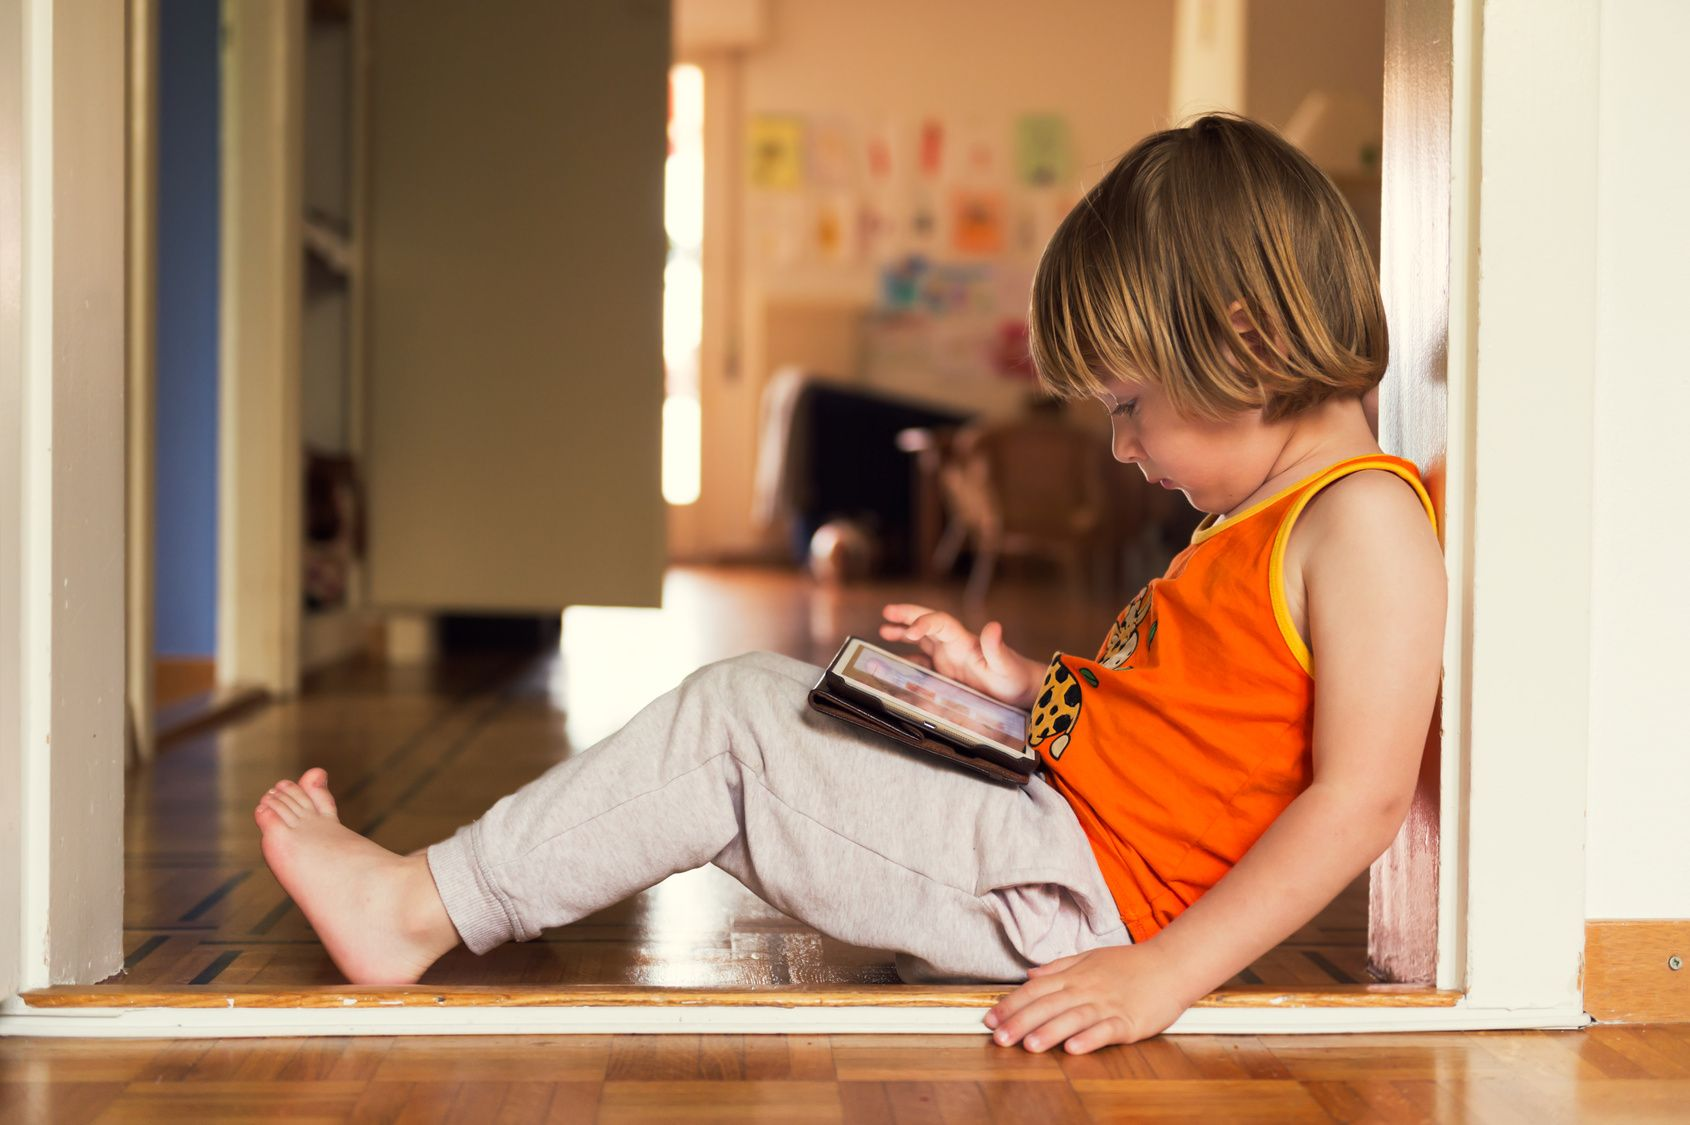 """Children growing up in an age of heavy gadget use are at risk of feeling chronic physical pain on top of showing signs of musculoskeletal dysfunction at a much earlier age compared with just a generation ago.  Put your children ahead of the curve and help them move through life with the elongated """"S"""" curve in the spine that's our birthright! Posture affects all our body's systems, from digestive to immune. Having correct postural alignment means having outright joy in moving your body!"""